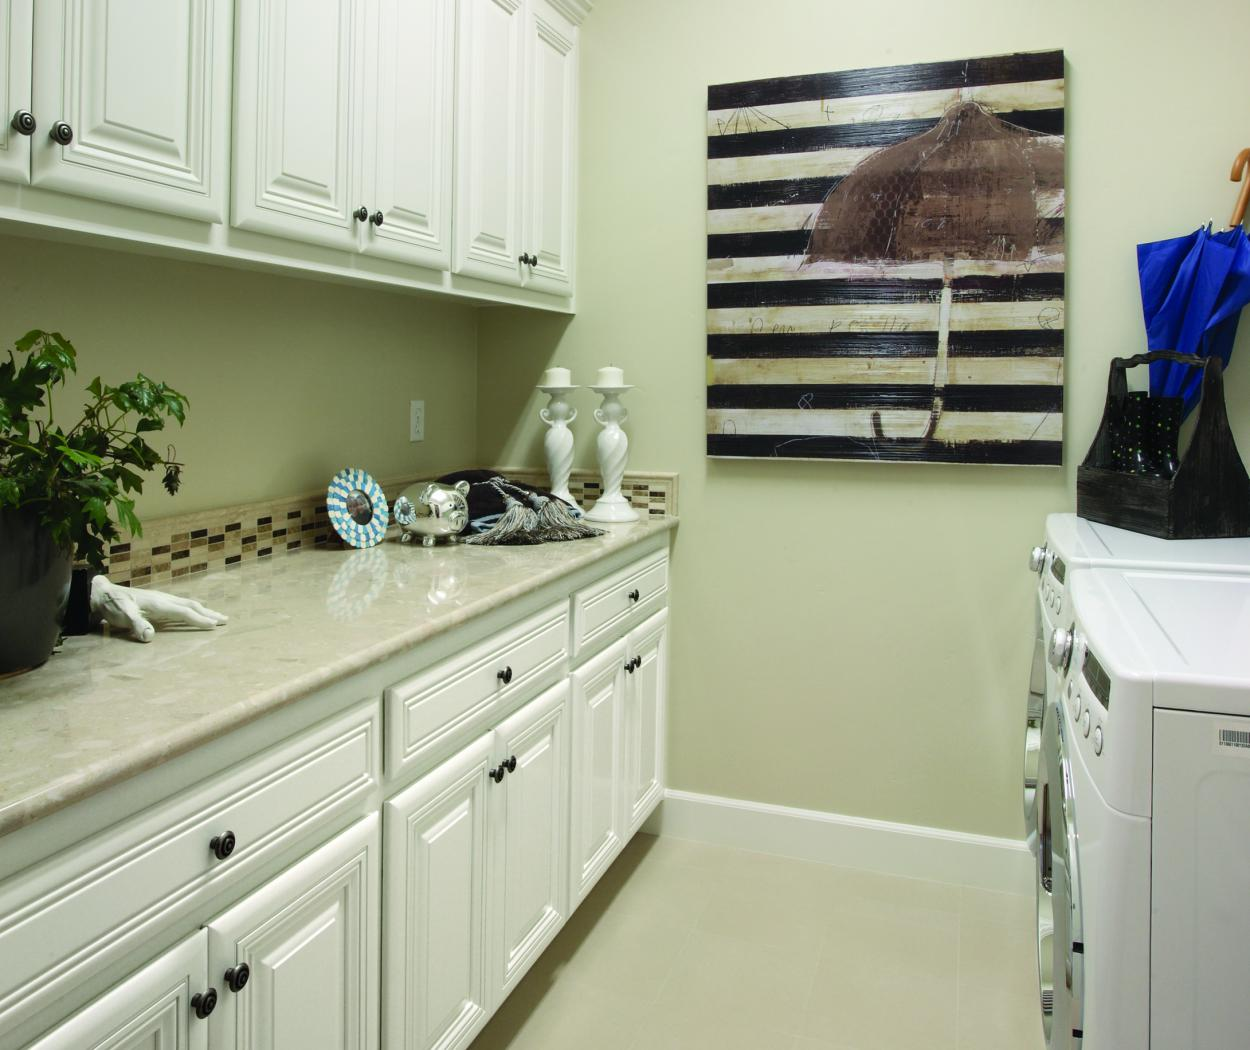 White Traditional Bathroom with a Beige Countertop, Decorative Knobs and a White Washer - Dryer